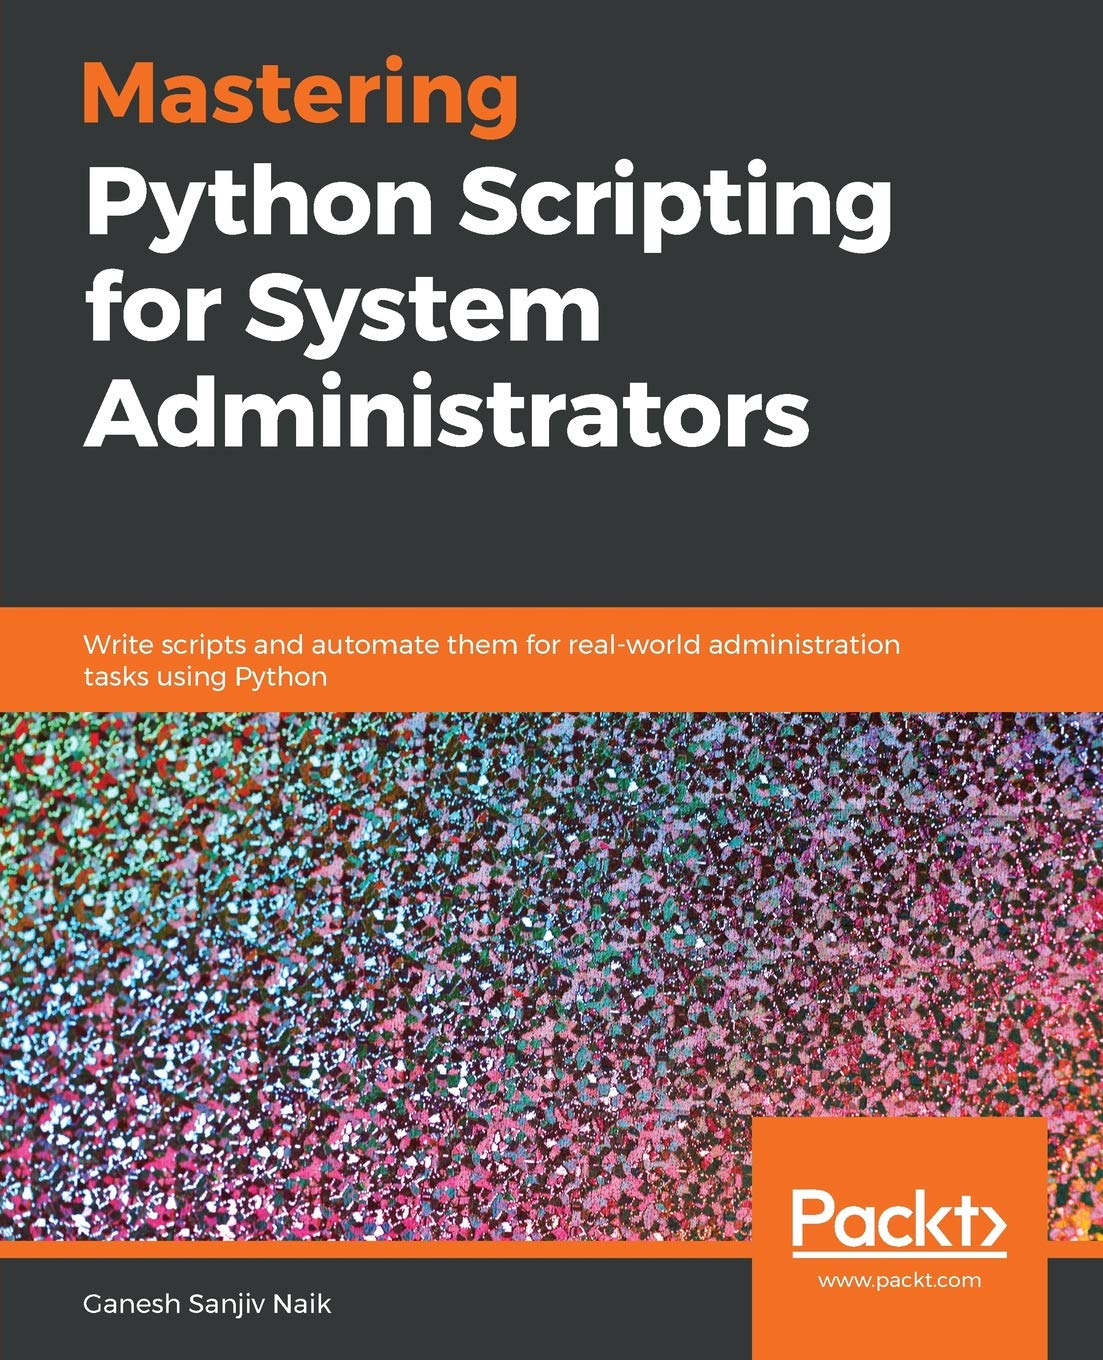 Mastering Python Scripting for System Administrators: Write